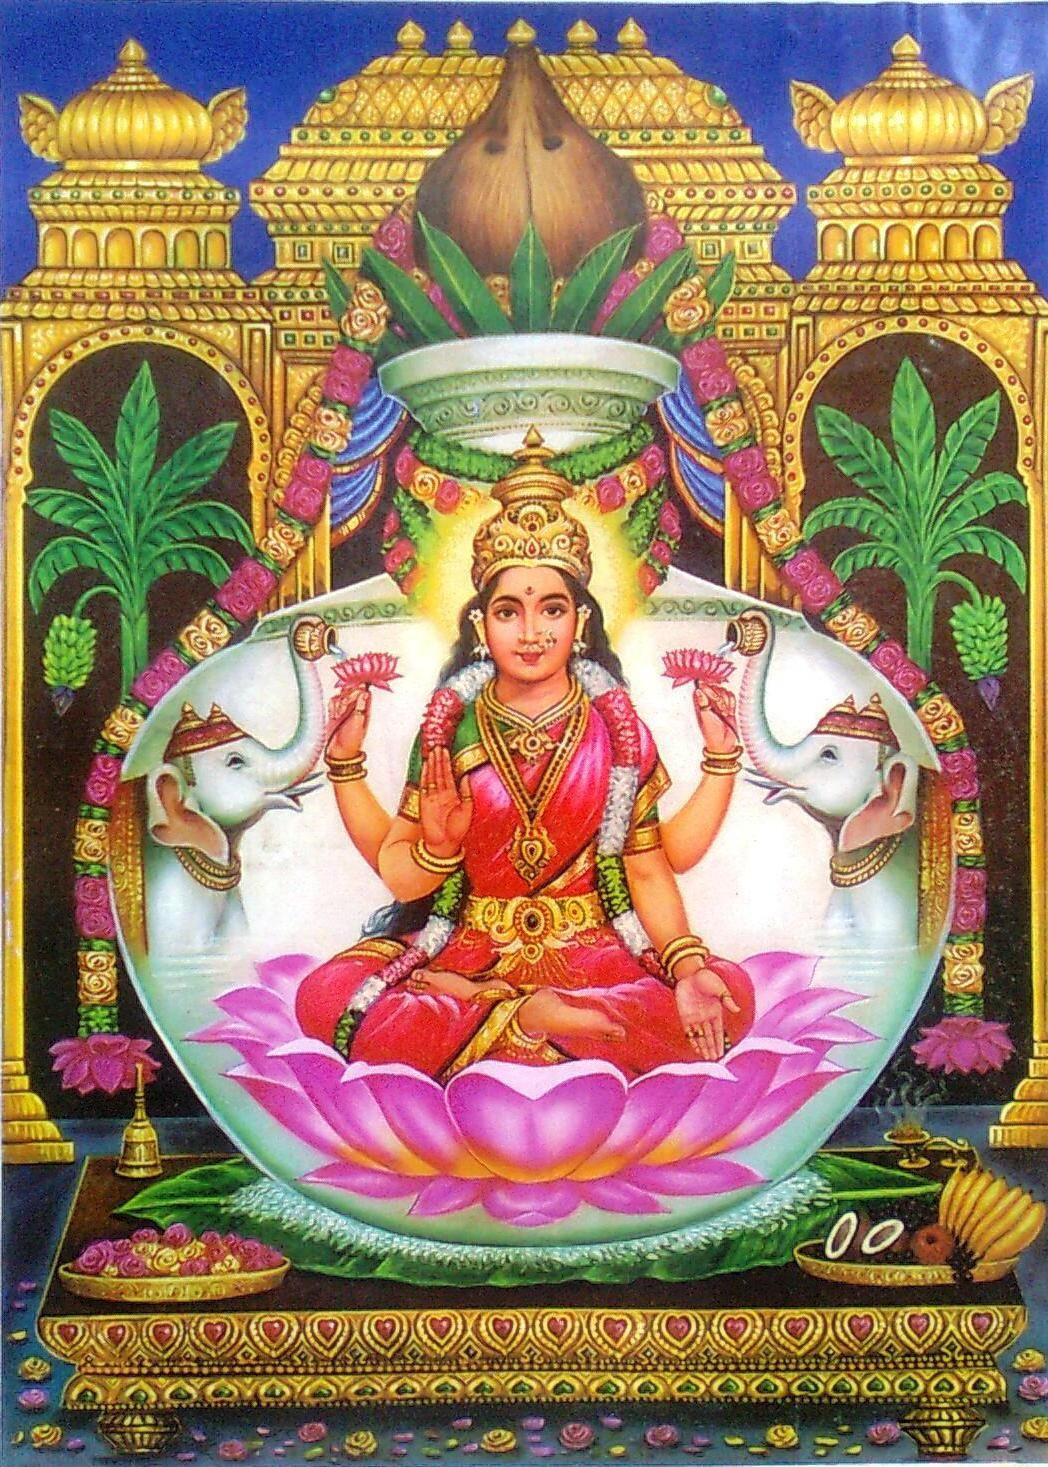 Varalakshmi Vratham Varalakshmi Vratham Is The Most